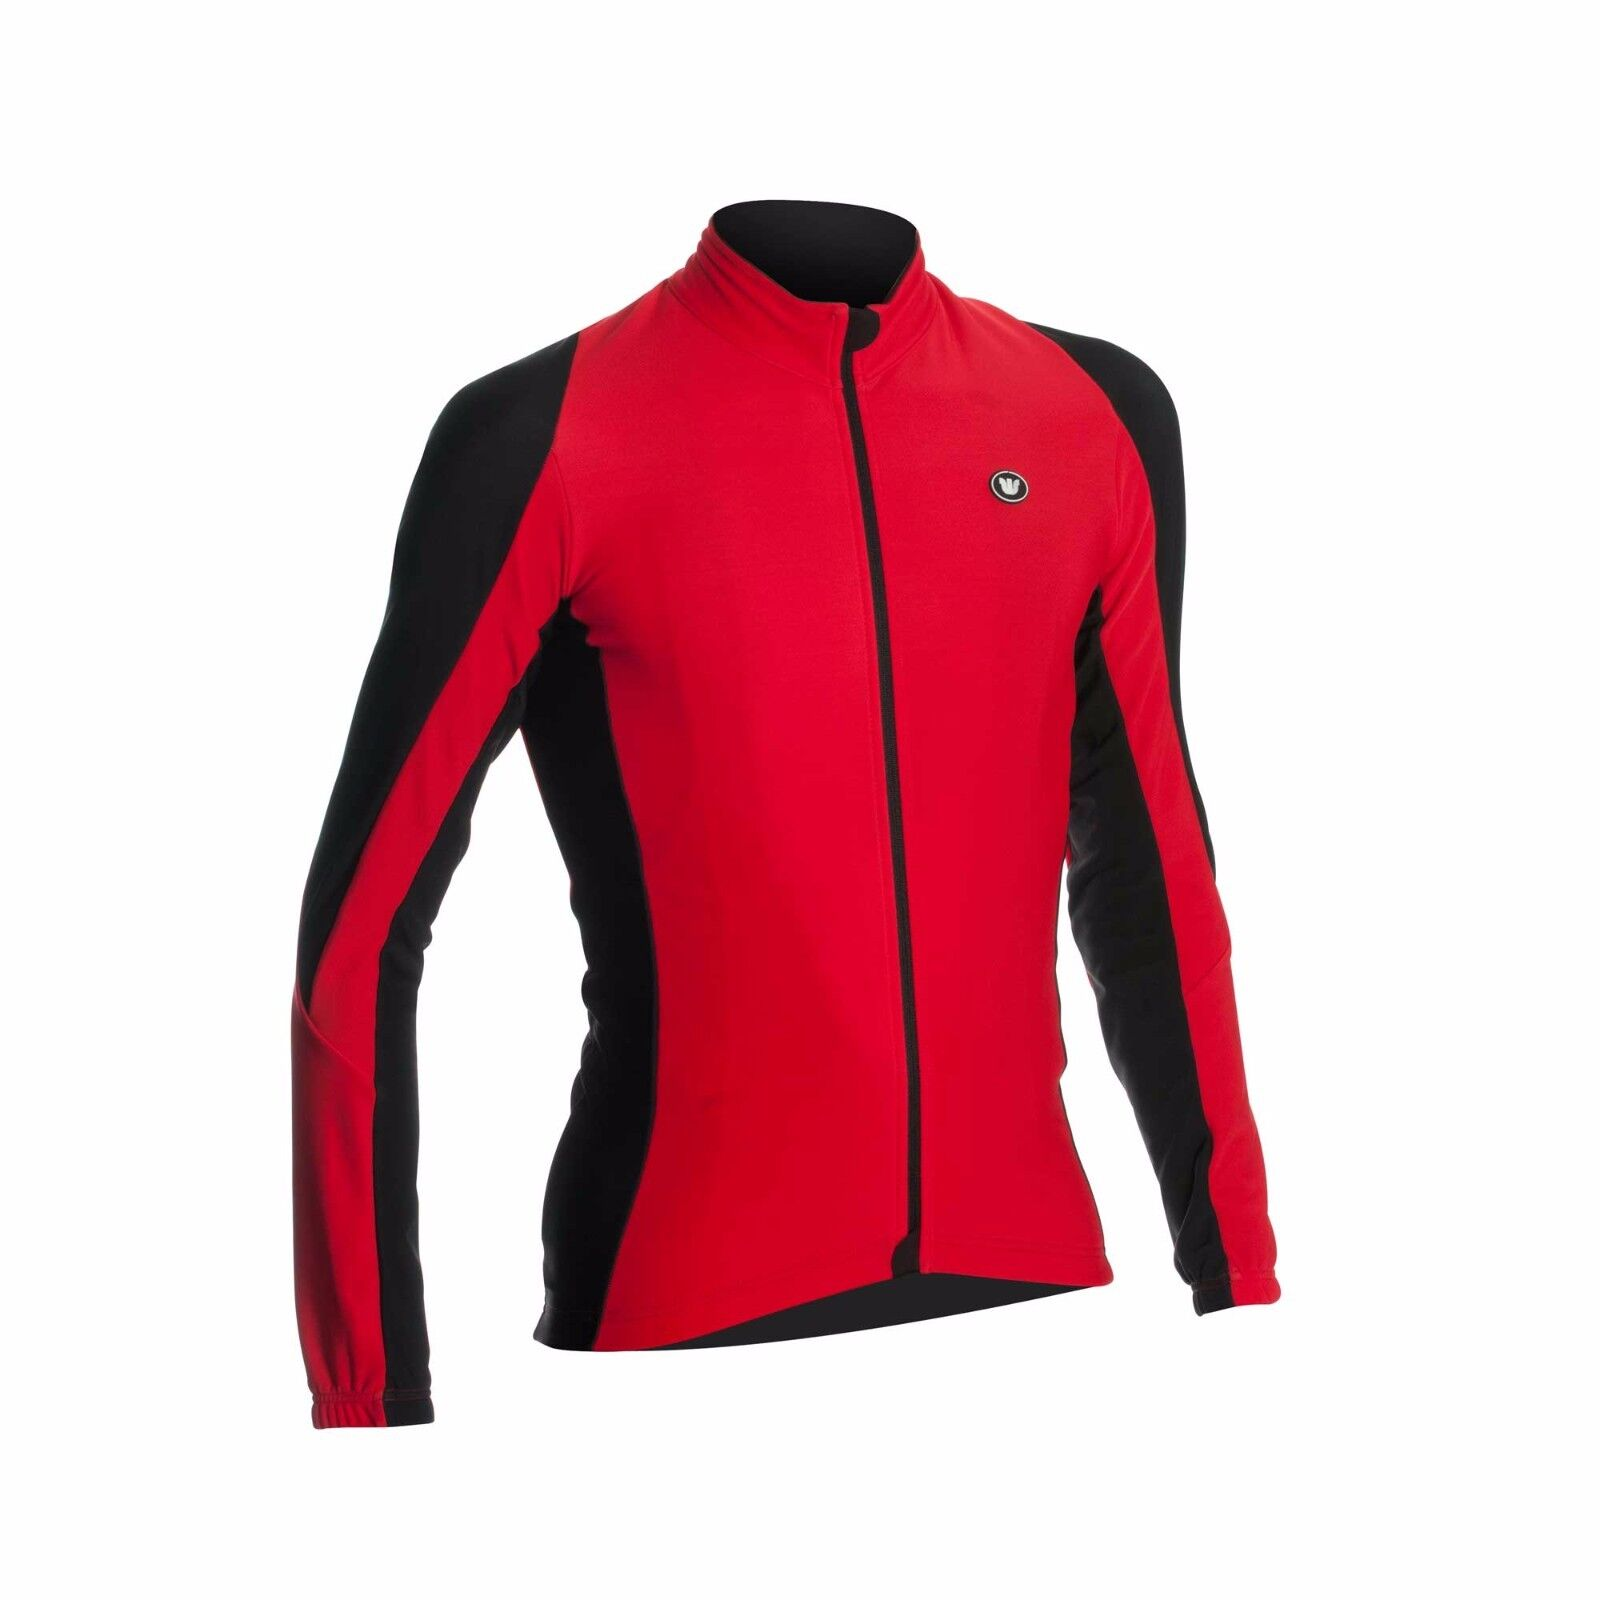 Vermarc Prima PRR Long Sleeve Jersey RED S-XXXL RRP .99 Save 40%